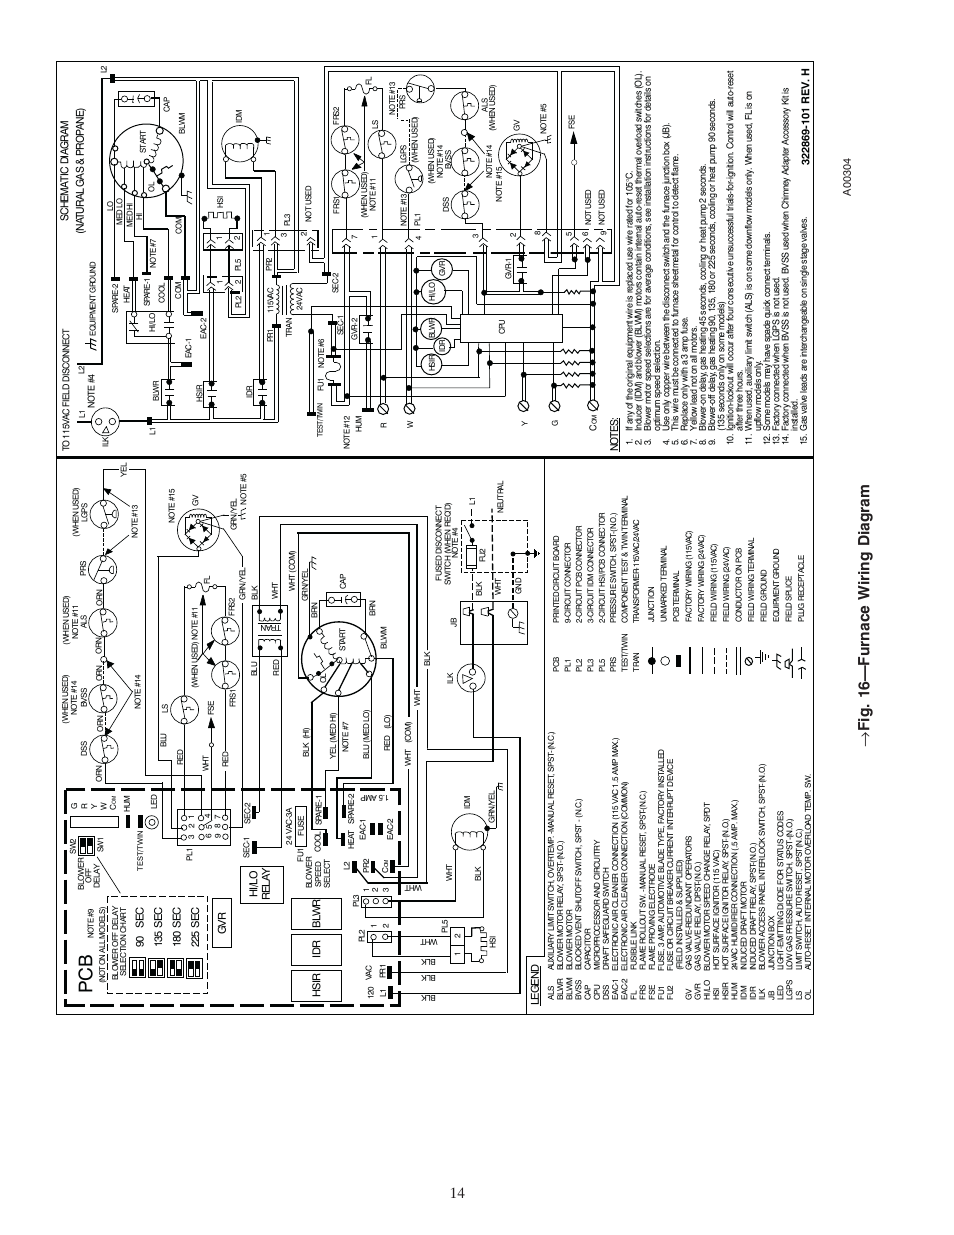 carrier weathermaker 8000 58zav page14 fig 16 furnace wiring diagram carrier weathermaker 8000 58zav carrier weathermaker 8000 wiring diagram at bayanpartner.co